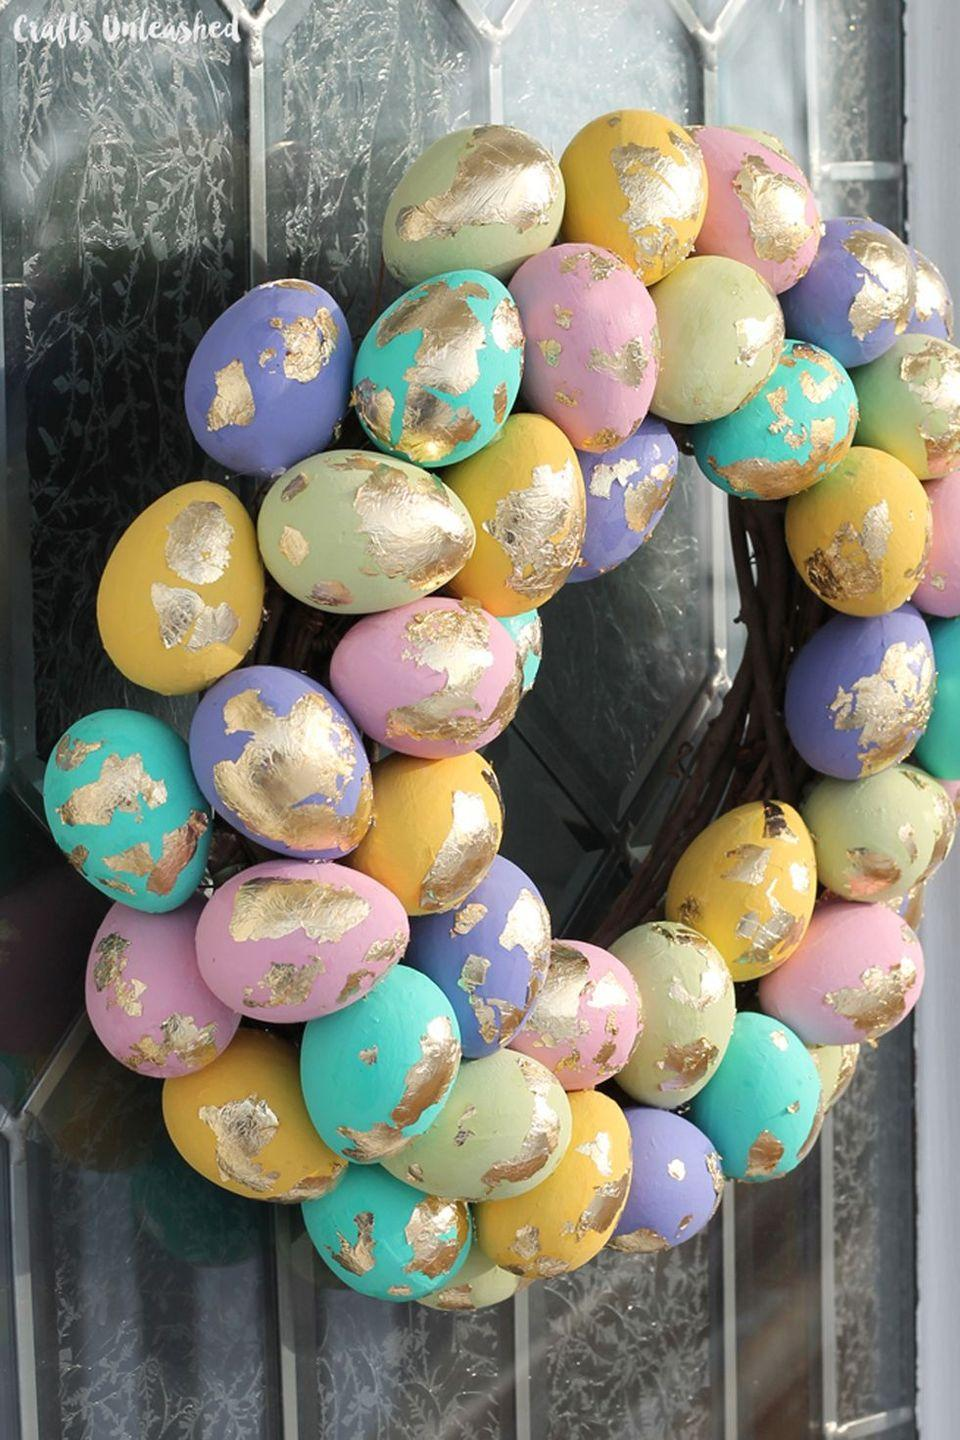 """<p>This fun project utilizes one of our favorite crafting supplies: gold leaf! The result is a decidedly dazzling Easter wreath.</p><p><strong>Get the tutorial at <a href=""""http://blog.consumercrafts.com/seasonal/spring/easter-decorations-seasonal/speckled-egg-diy-easter-wreath/"""" rel=""""nofollow noopener"""" target=""""_blank"""" data-ylk=""""slk:Crafts Unleashed"""" class=""""link rapid-noclick-resp"""">Crafts Unleashed</a></strong><strong>.</strong></p><p><a class=""""link rapid-noclick-resp"""" href=""""https://www.amazon.com/Gigules-Imitation-Painting-Crafting-Decoration/dp/B07CQD174T?tag=syn-yahoo-20&ascsubtag=%5Bartid%7C10050.g.4088%5Bsrc%7Cyahoo-us"""" rel=""""nofollow noopener"""" target=""""_blank"""" data-ylk=""""slk:SHOP GOLD LEAF"""">SHOP GOLD LEAF </a></p>"""